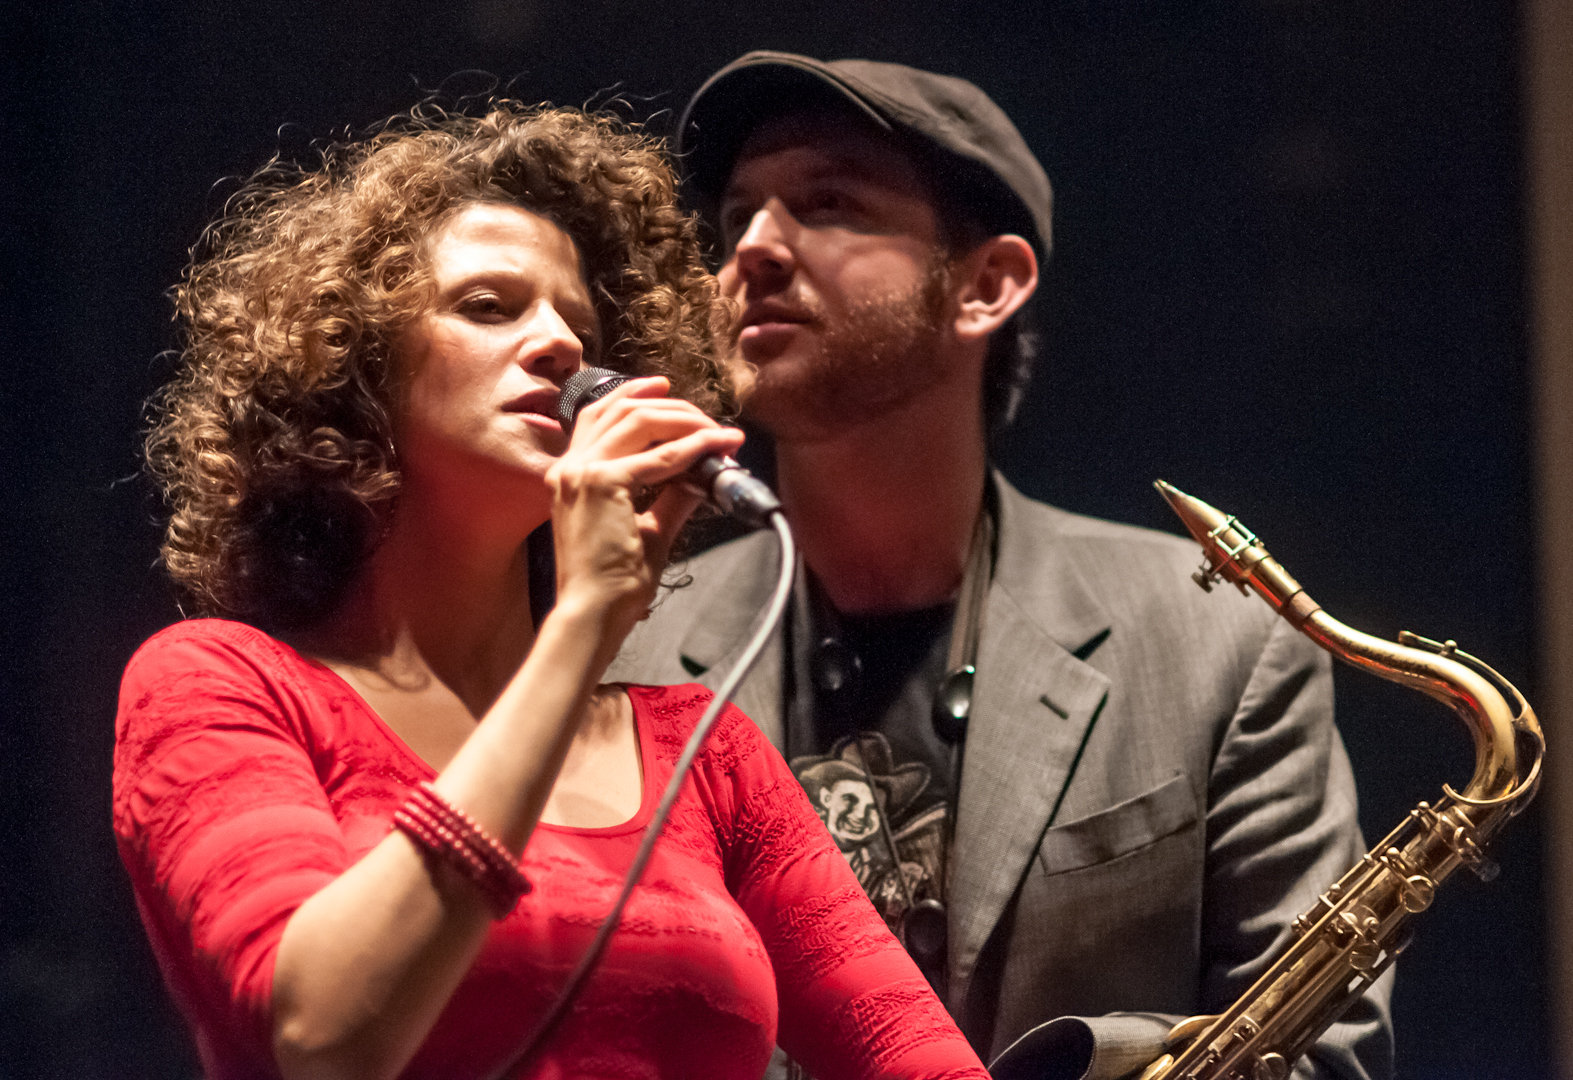 Cyrille Aimee and Matt Simons with the Surreal Band at Dizzy's Club Coca Cola